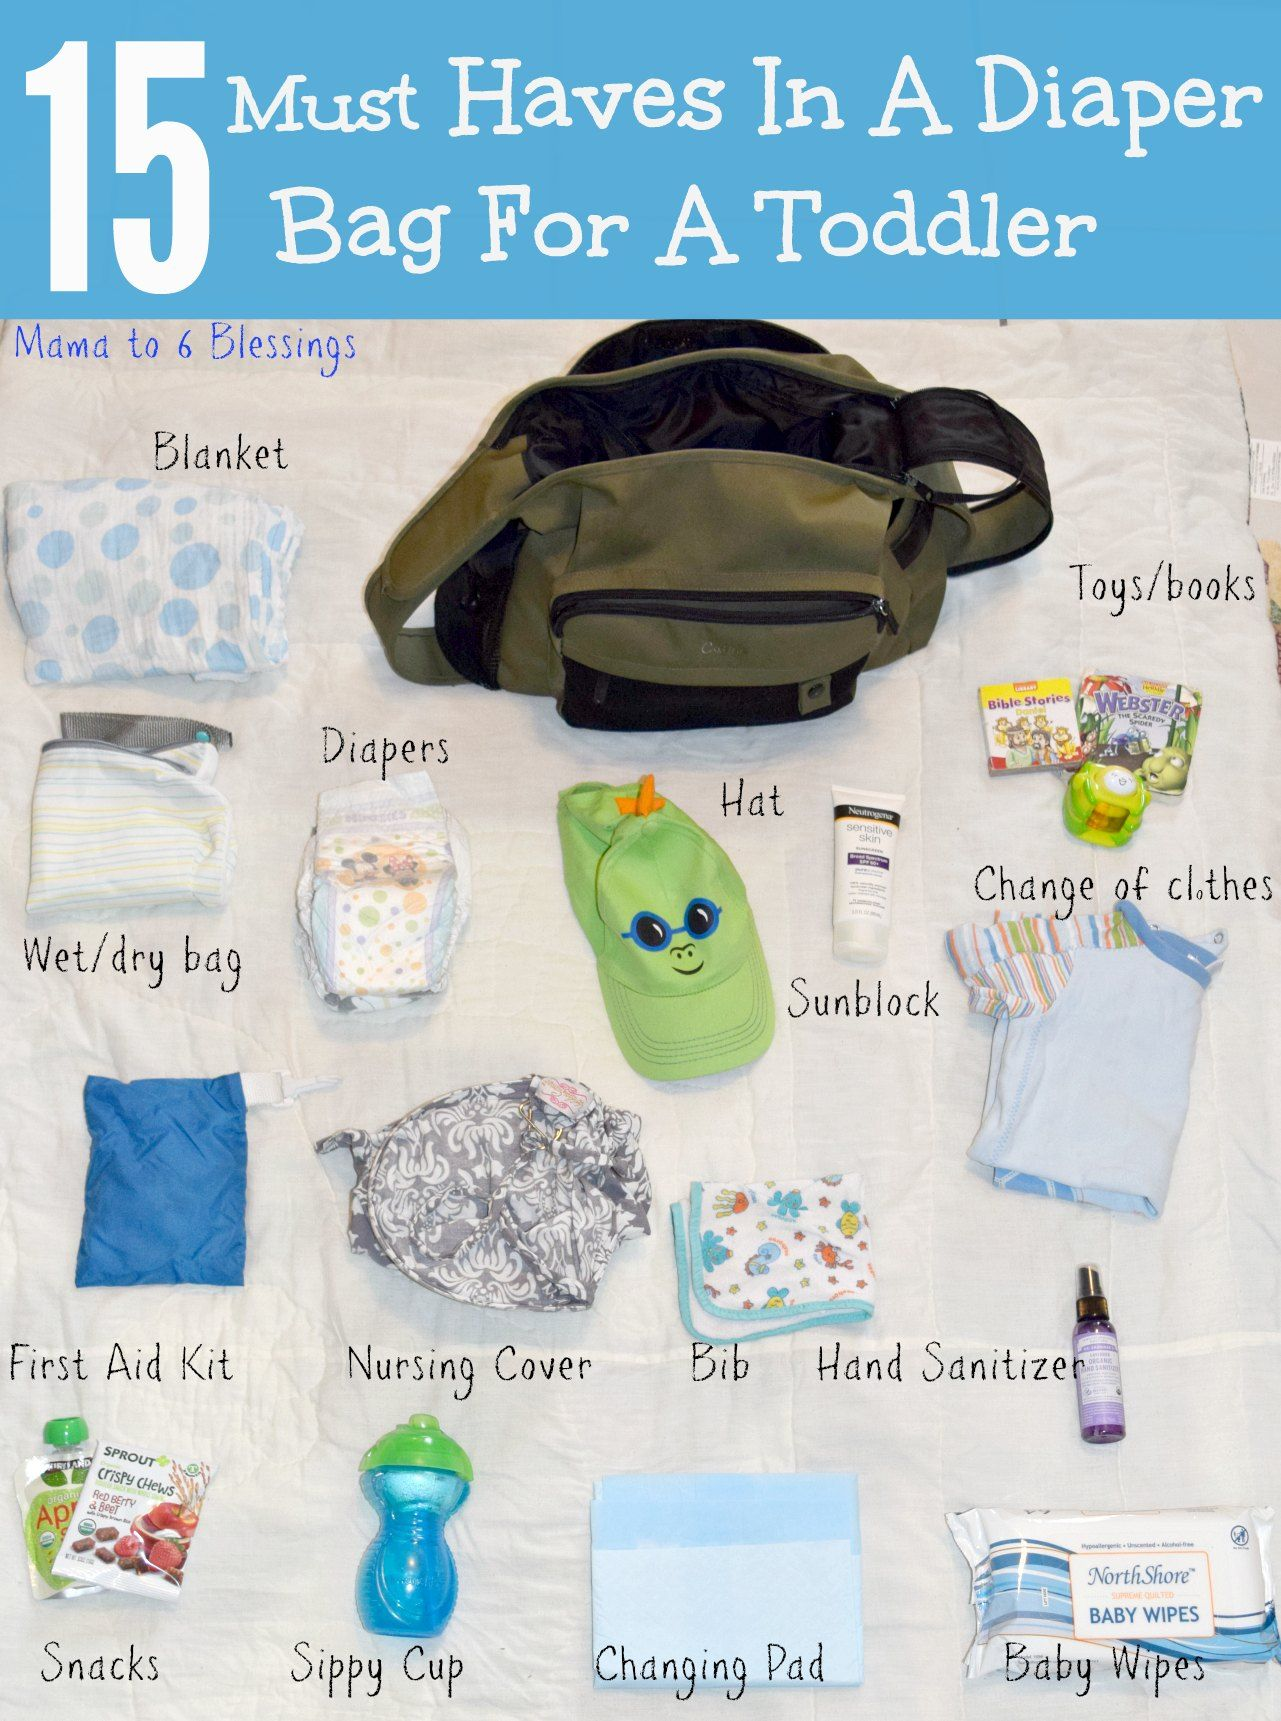 15 Must Haves In A Diaper Bag For A Toddler Toddler Diaper Bag